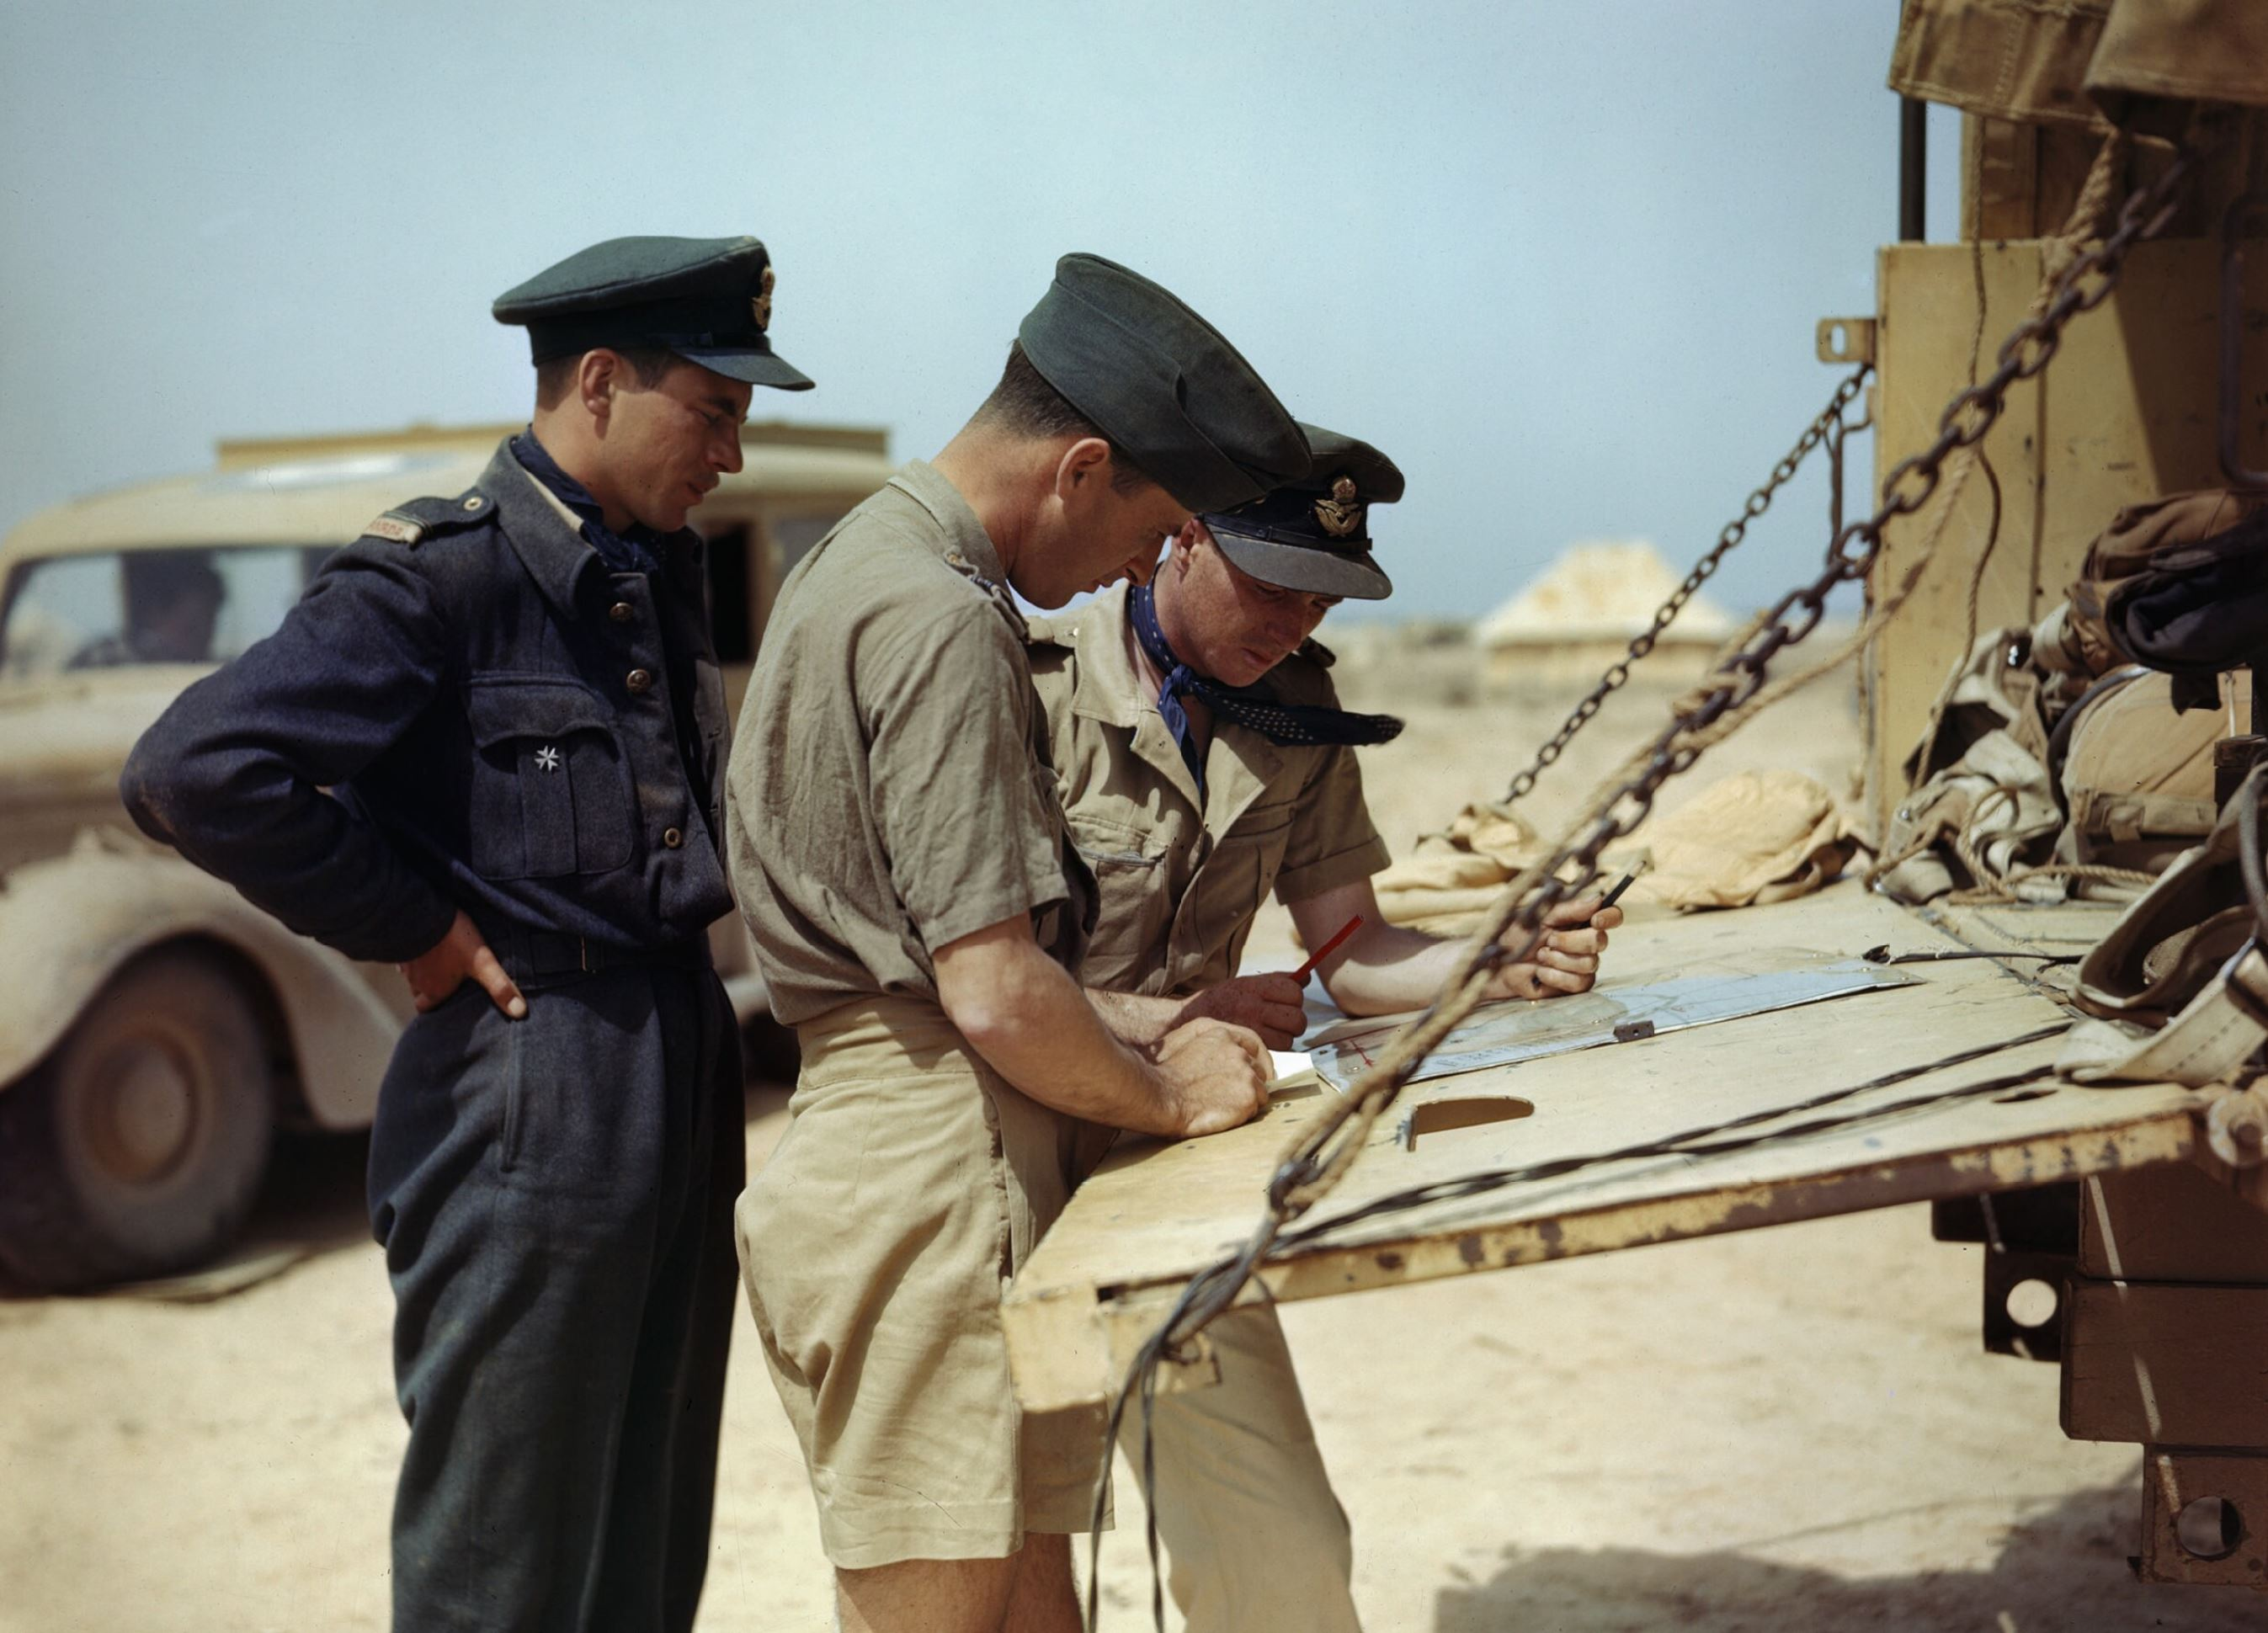 Aircrew RCAF 417Sqn pilots planning another mission Goubrine airfield Tunisia April 1943 IWM TR829